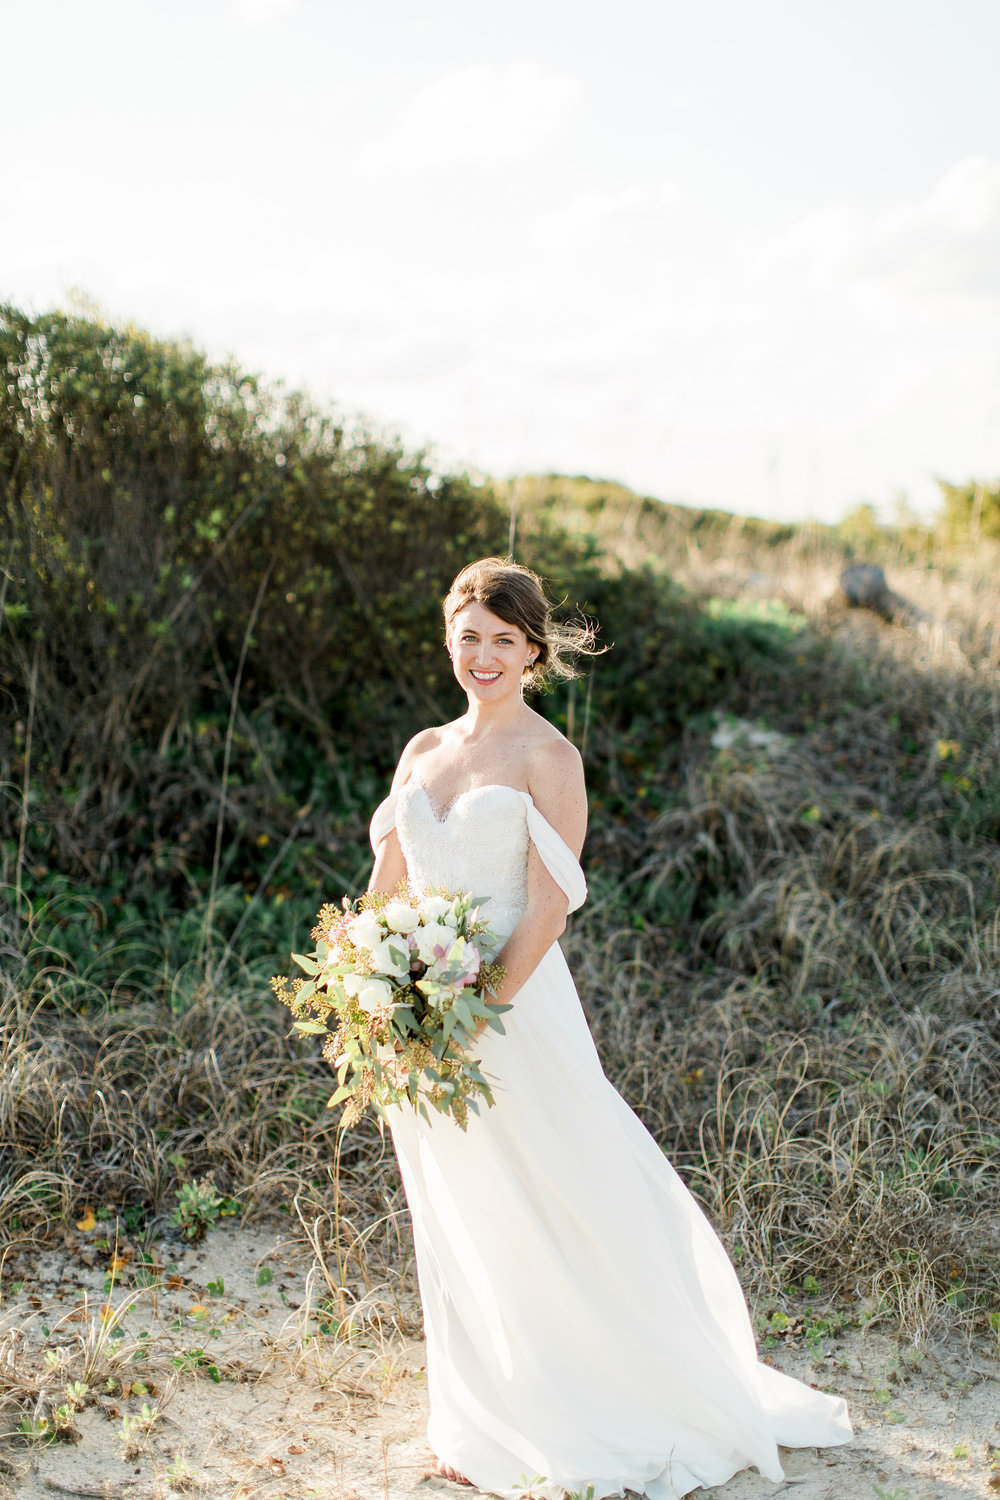 marianne-lucille-photography-jleslie-decor-tybee-wedding-sunset-wedding-beach-wedding-savannah-beach-wedding-sarah-seven-hayes-savannah-bridal-boutique-savannah-wedding-dresses-savannah-bridal-gowns-savannah-weddings-savannah-bridal-17.jpg